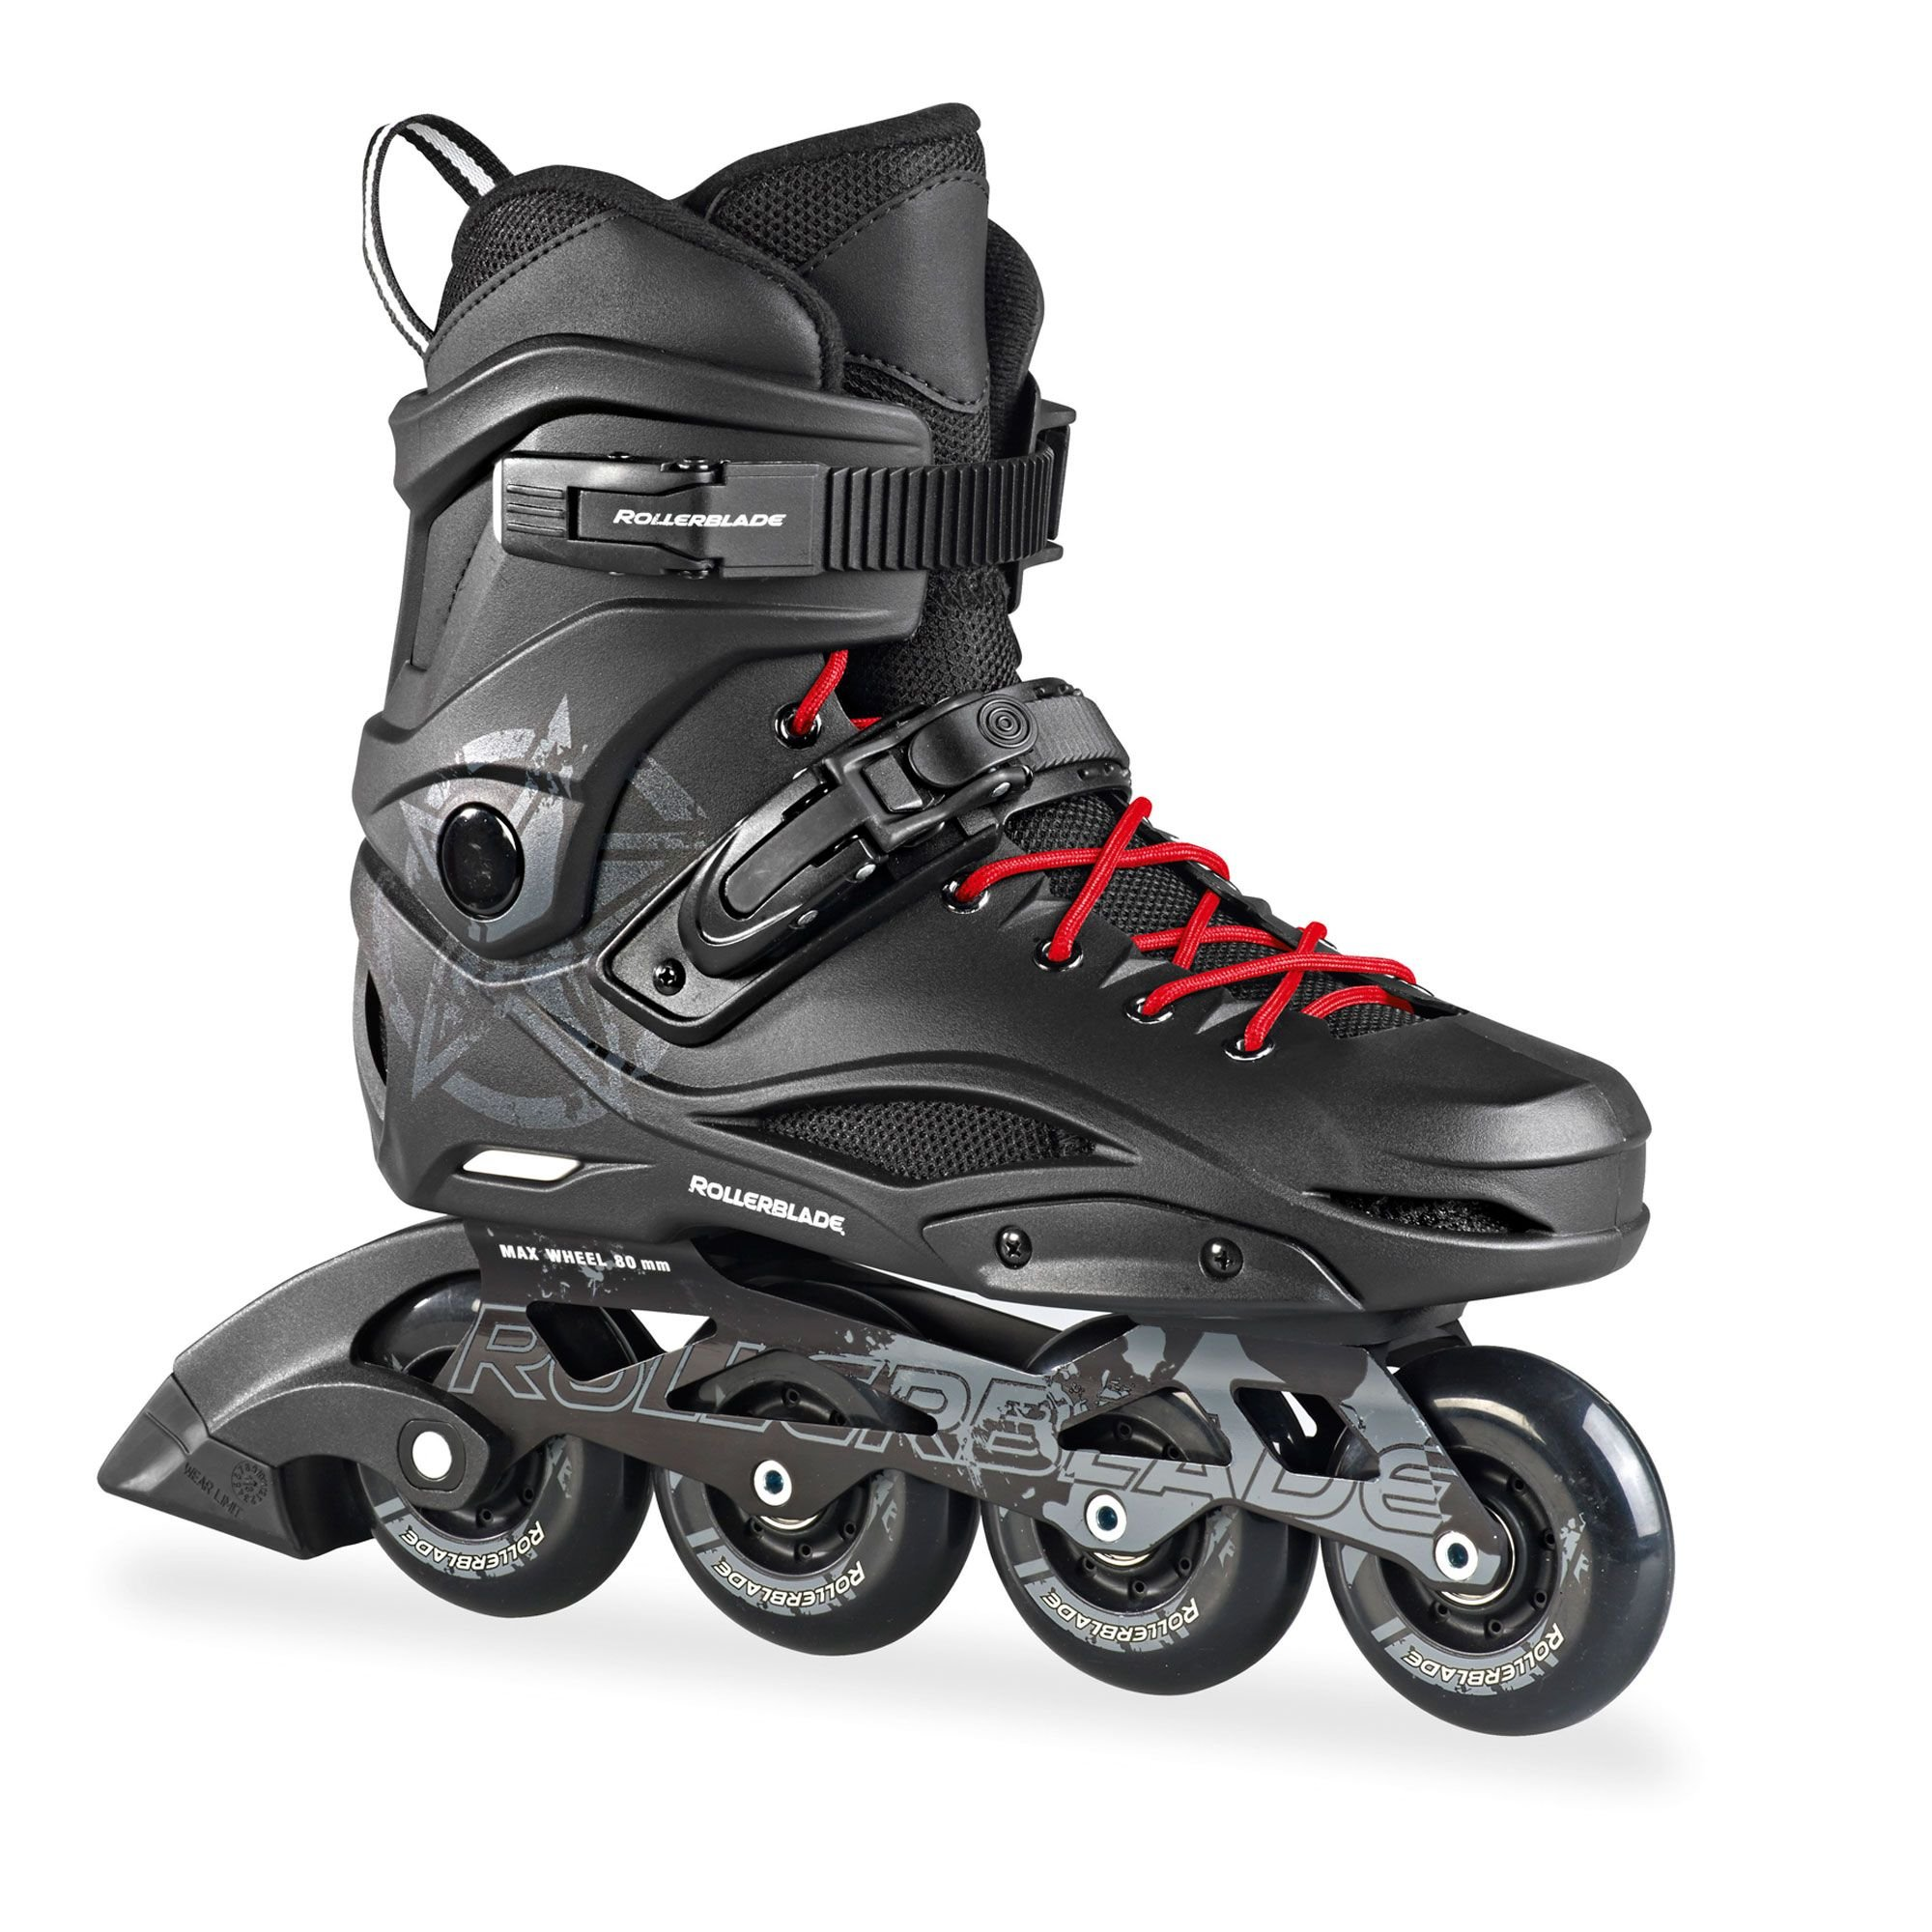 Rollerblade RB 80 Skates Black 25 & Headband Bundle